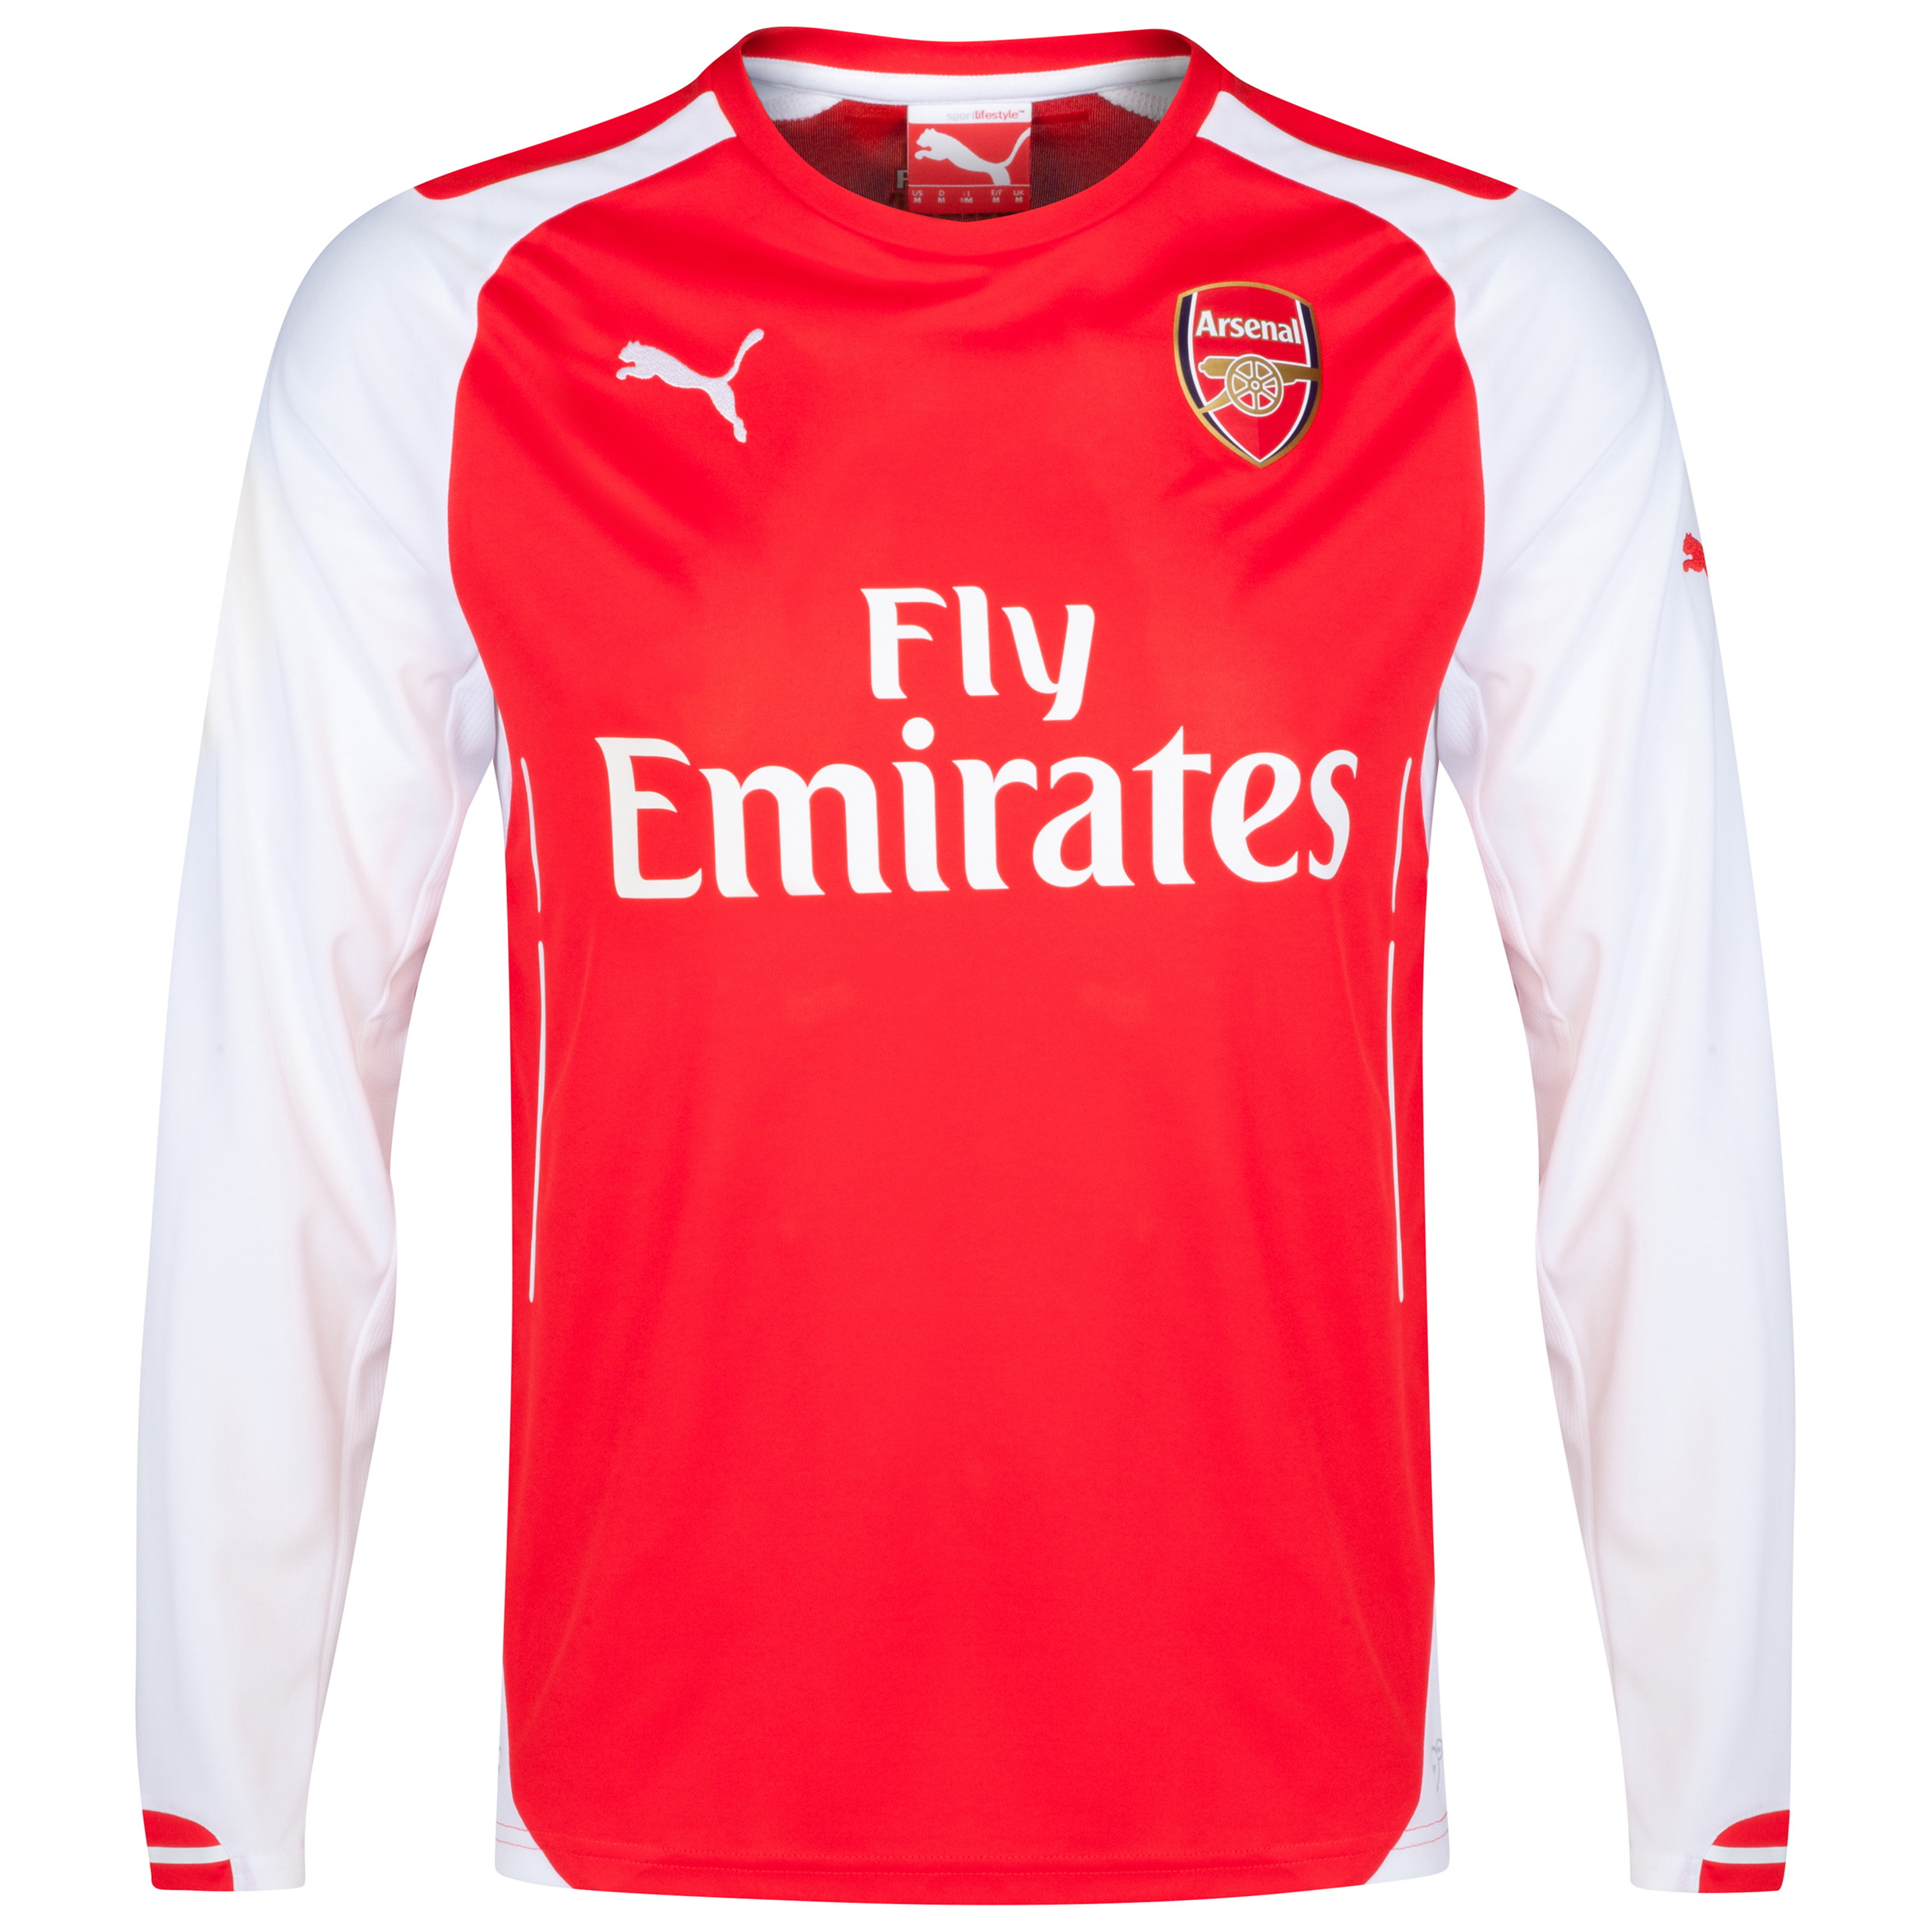 Arsenal Home Shirt 2014/15 - Long Sleeve - Kids